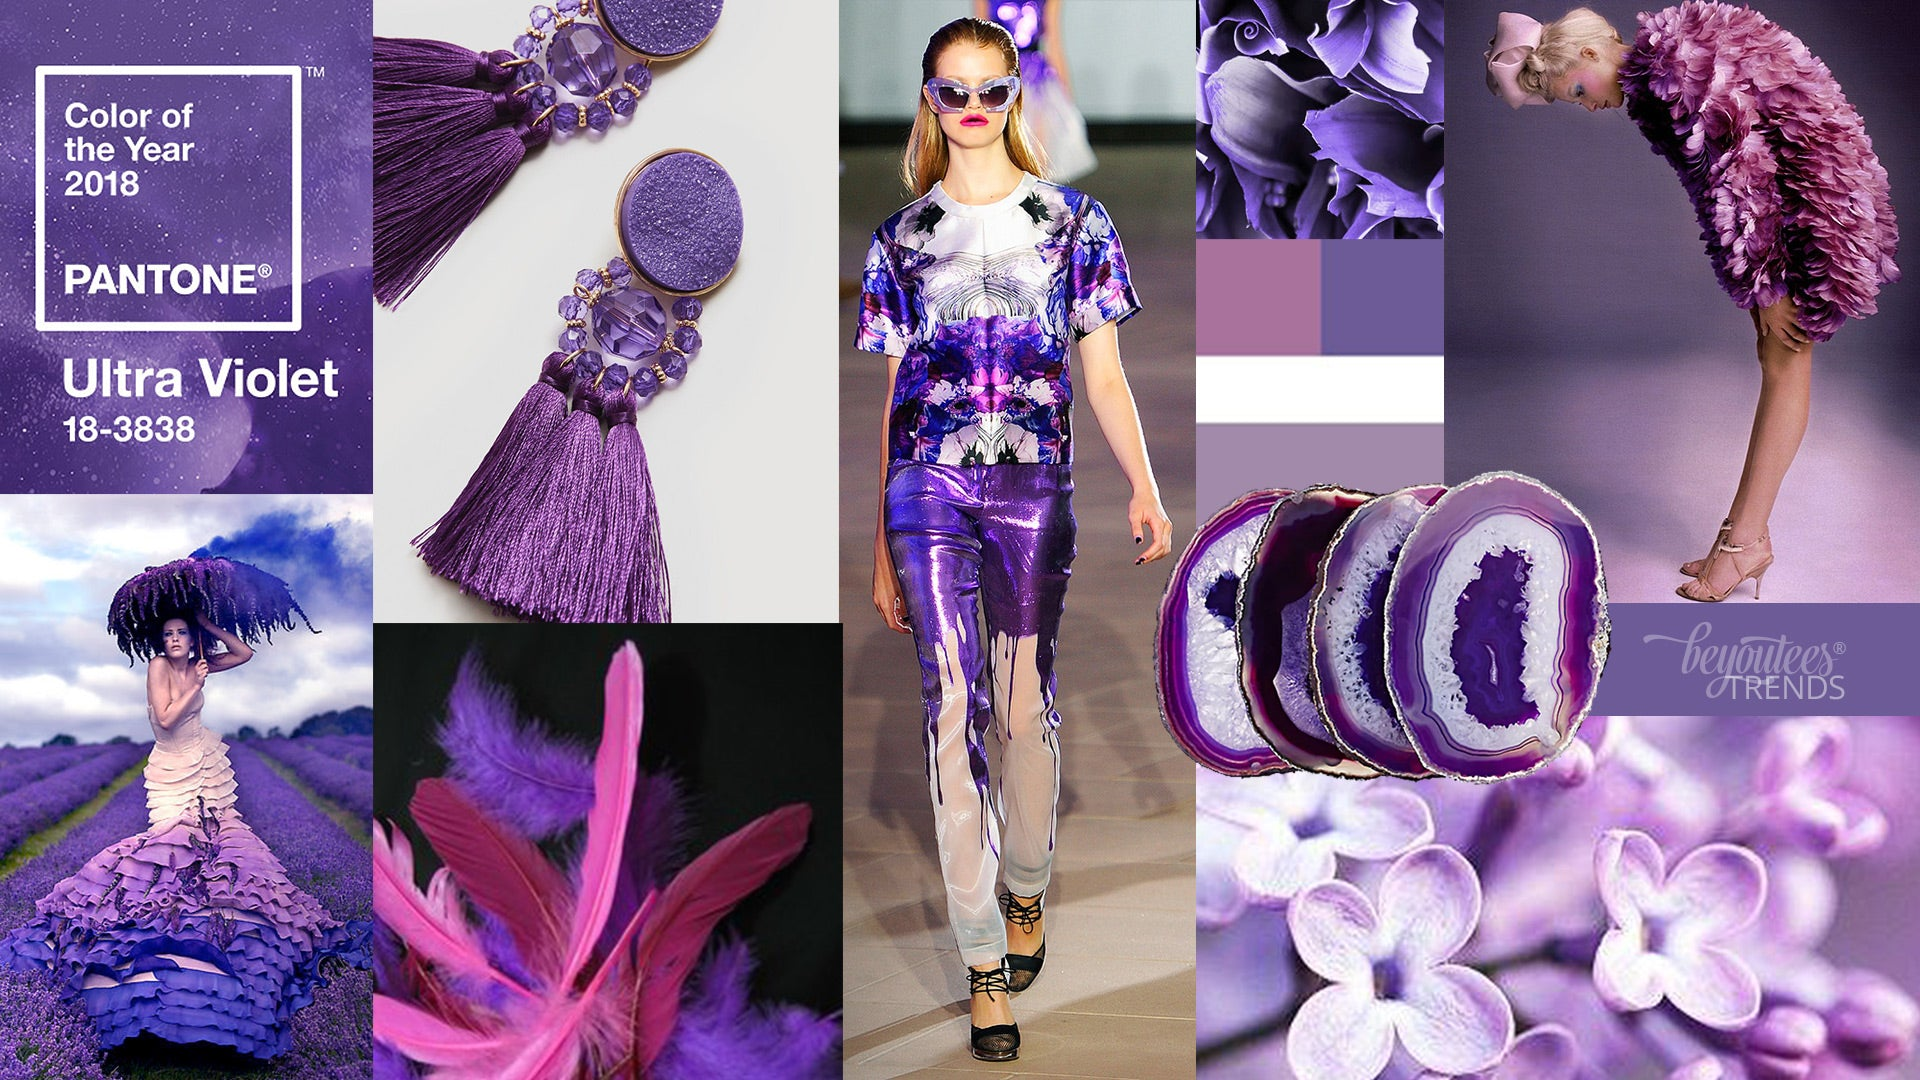 Pantone 2018 Ultra Violet Trends by BeYouTees®